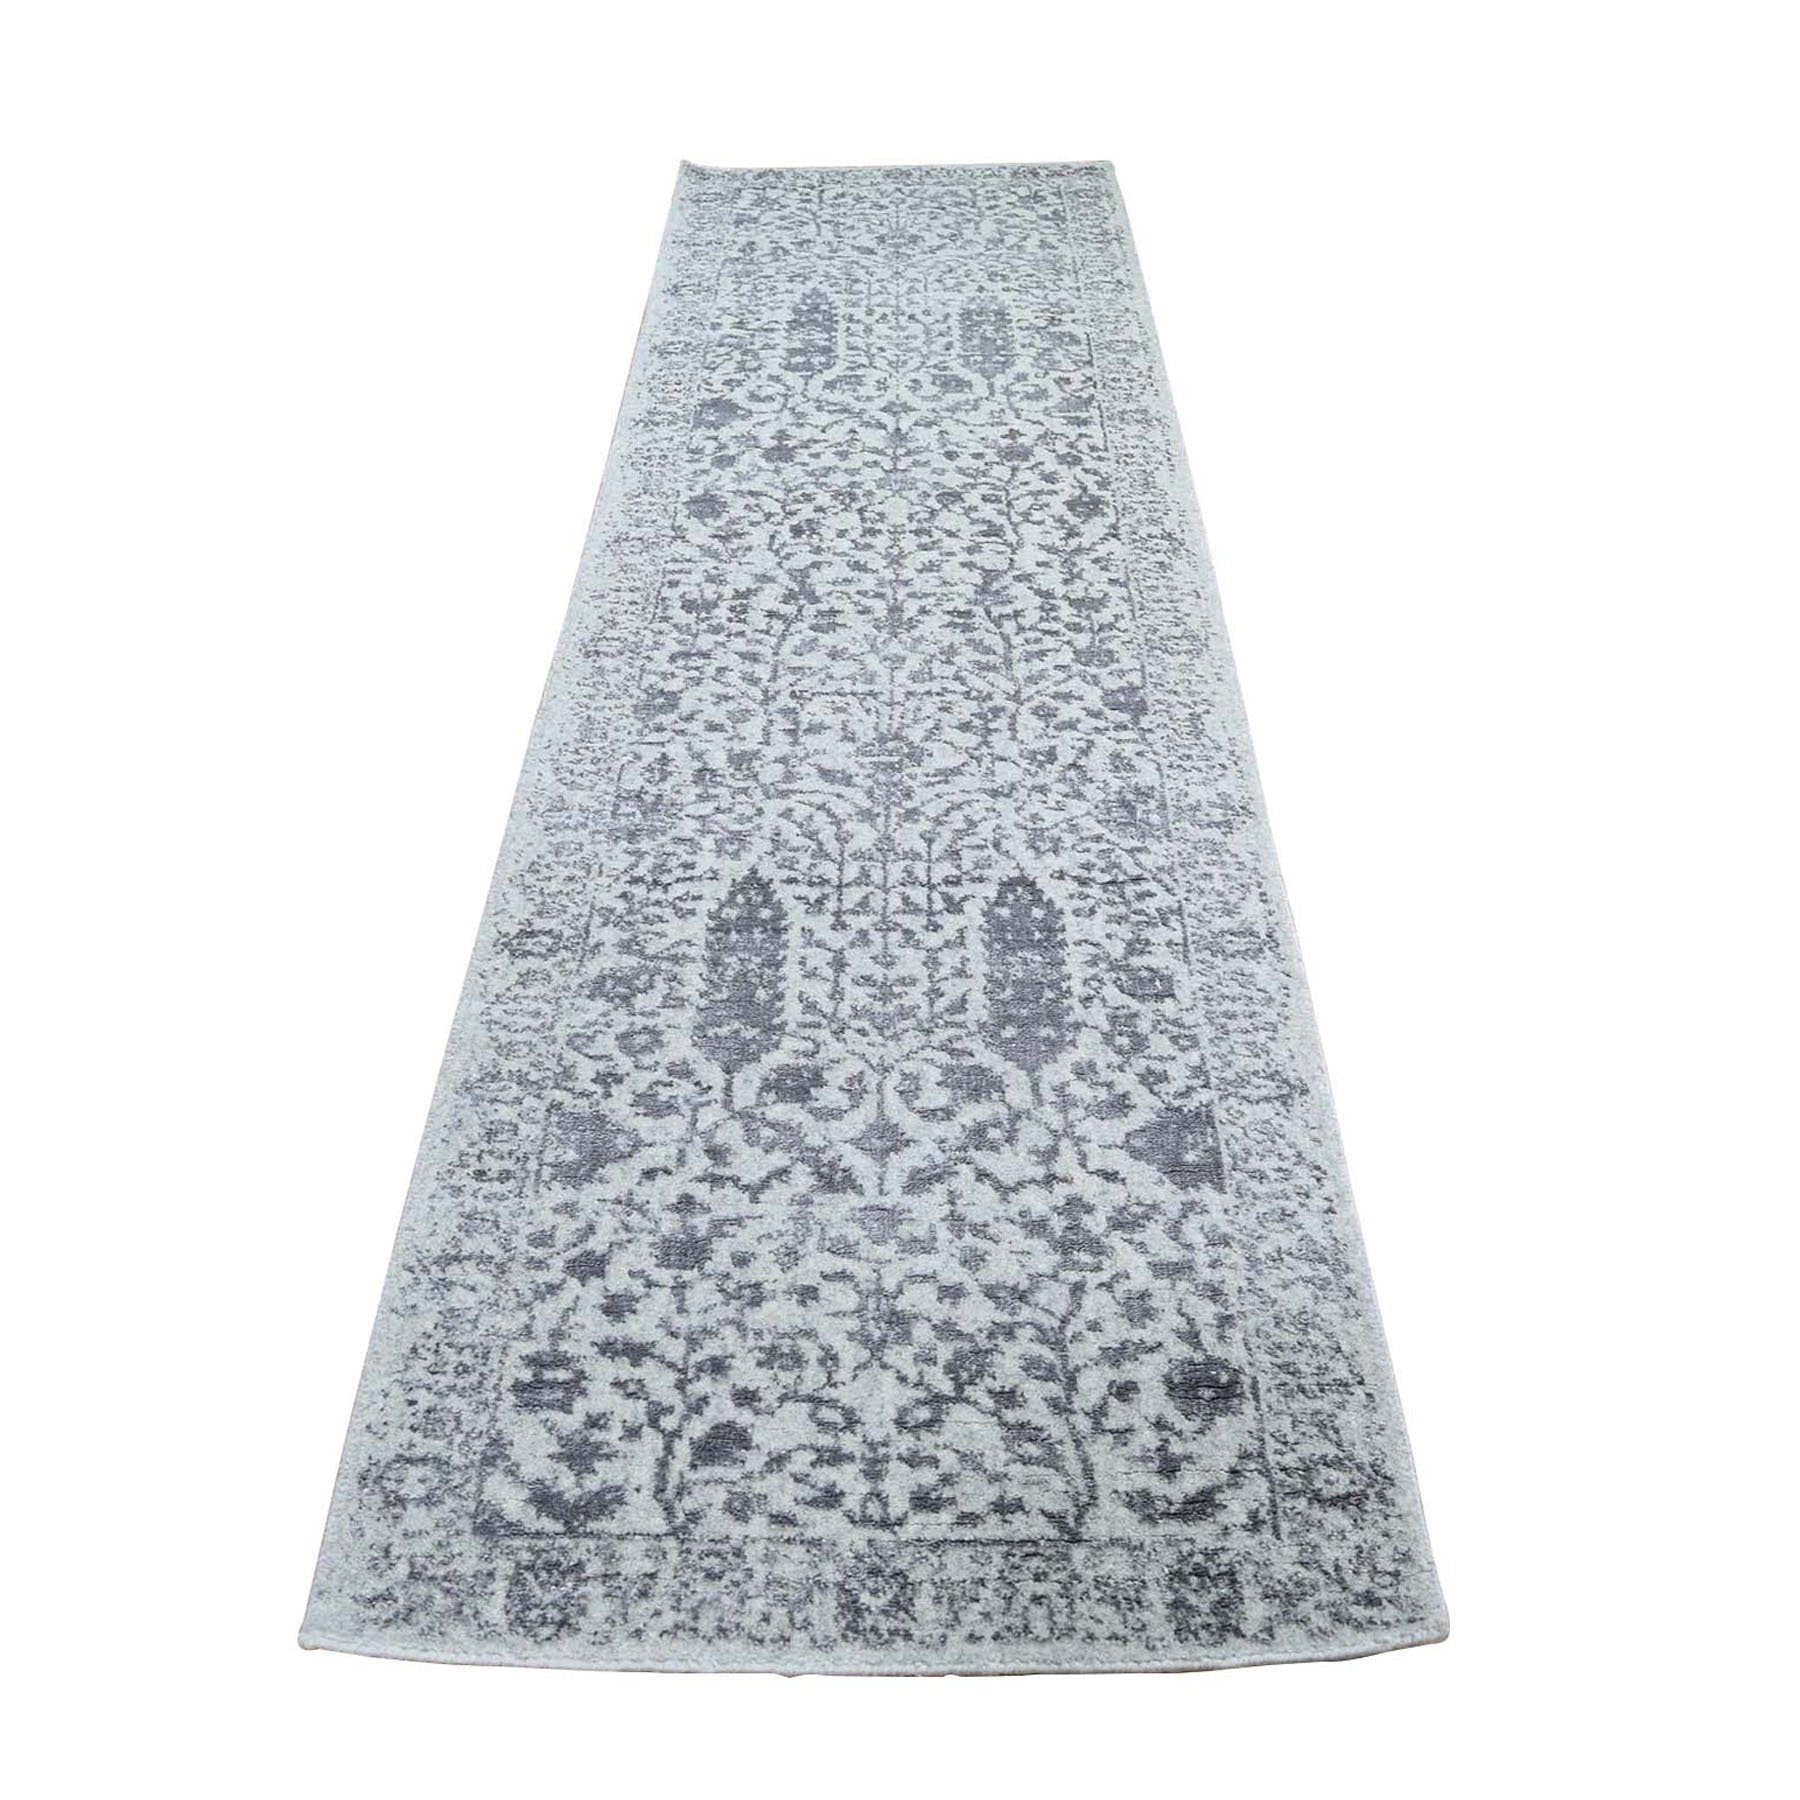 "2'5""x8'1"" Jacquard Hand-Loomed Gray Broken Cypress Tree Design Silken Thick And Plush Runner Oriental Rug"